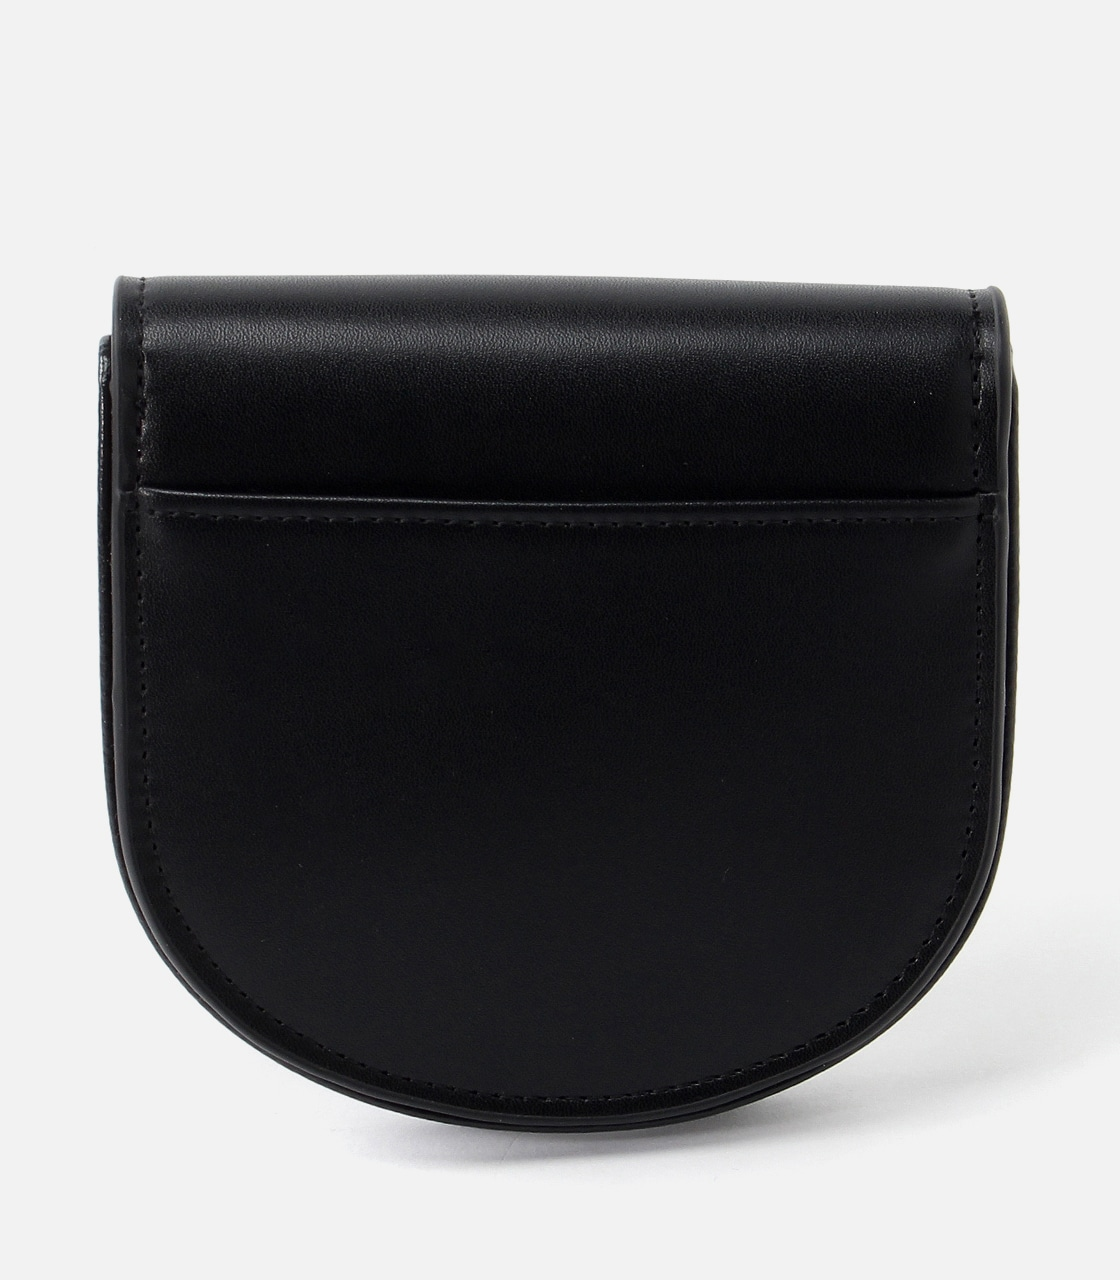 【AZUL BY MOUSSY】HARF ROUND WALLET 詳細画像 BLK 2